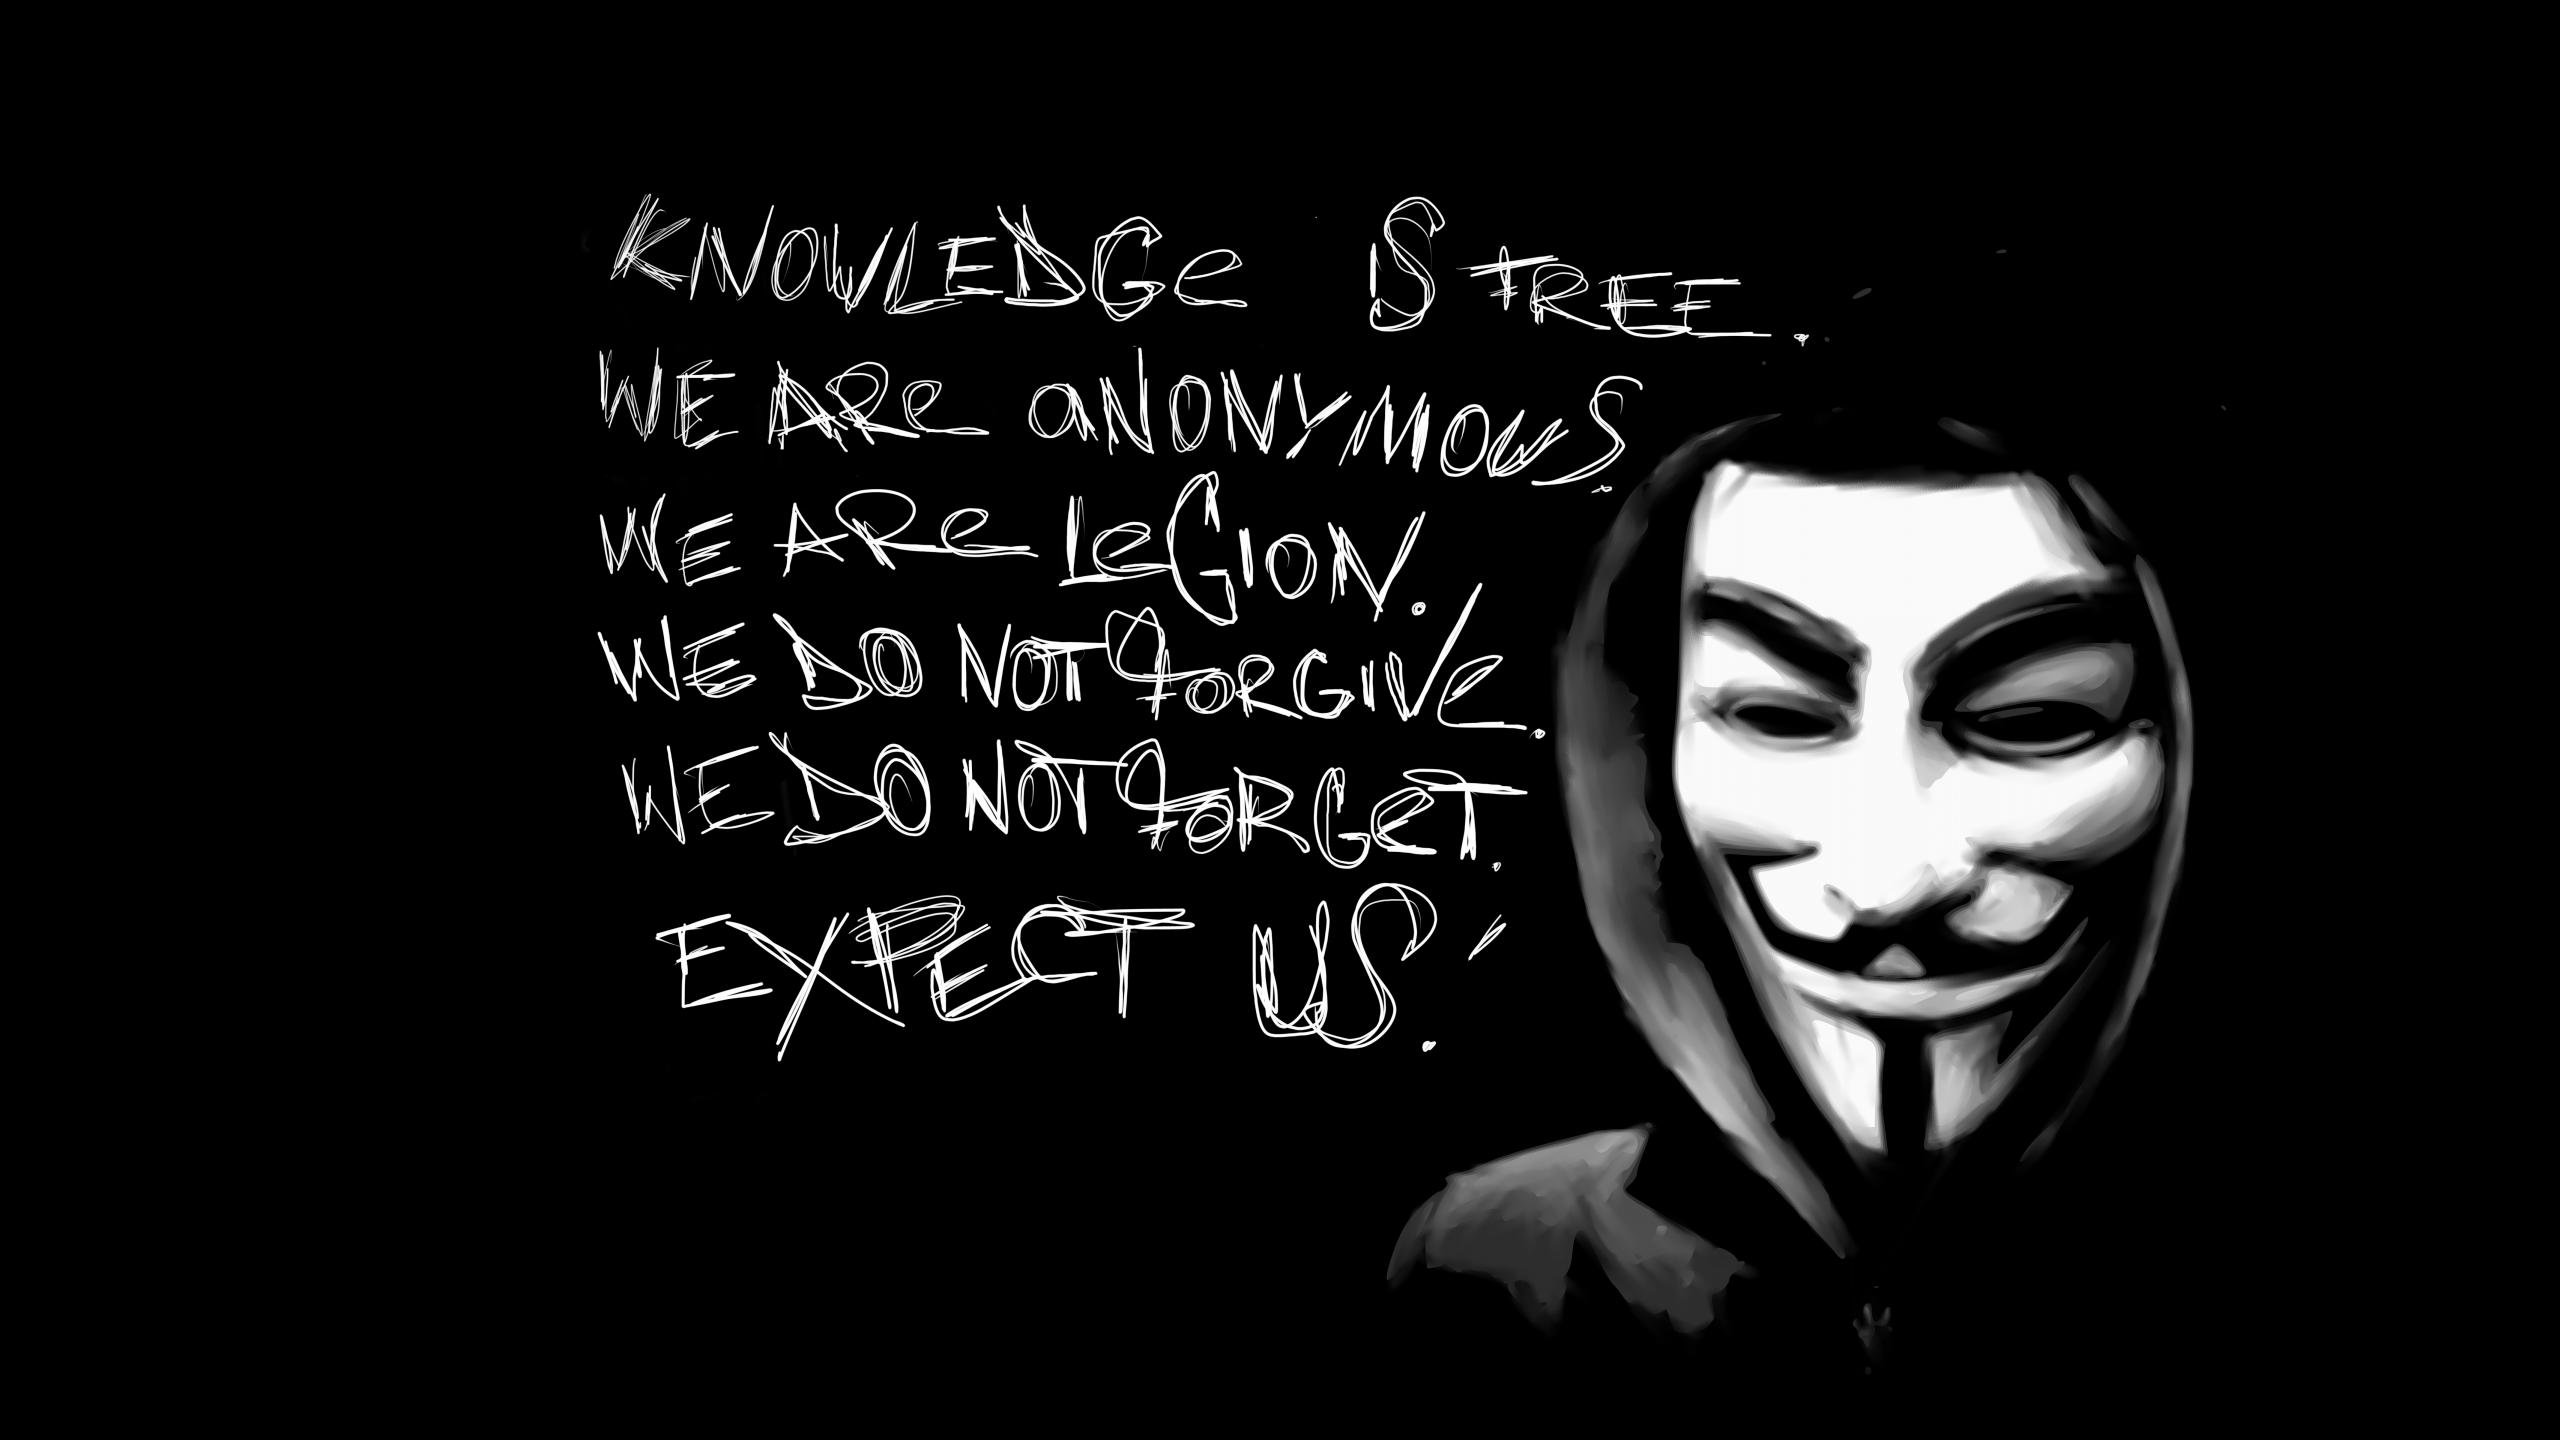 Free Download Anonymous Wallpaper ID162146 Hd 2560x1440 For Computer